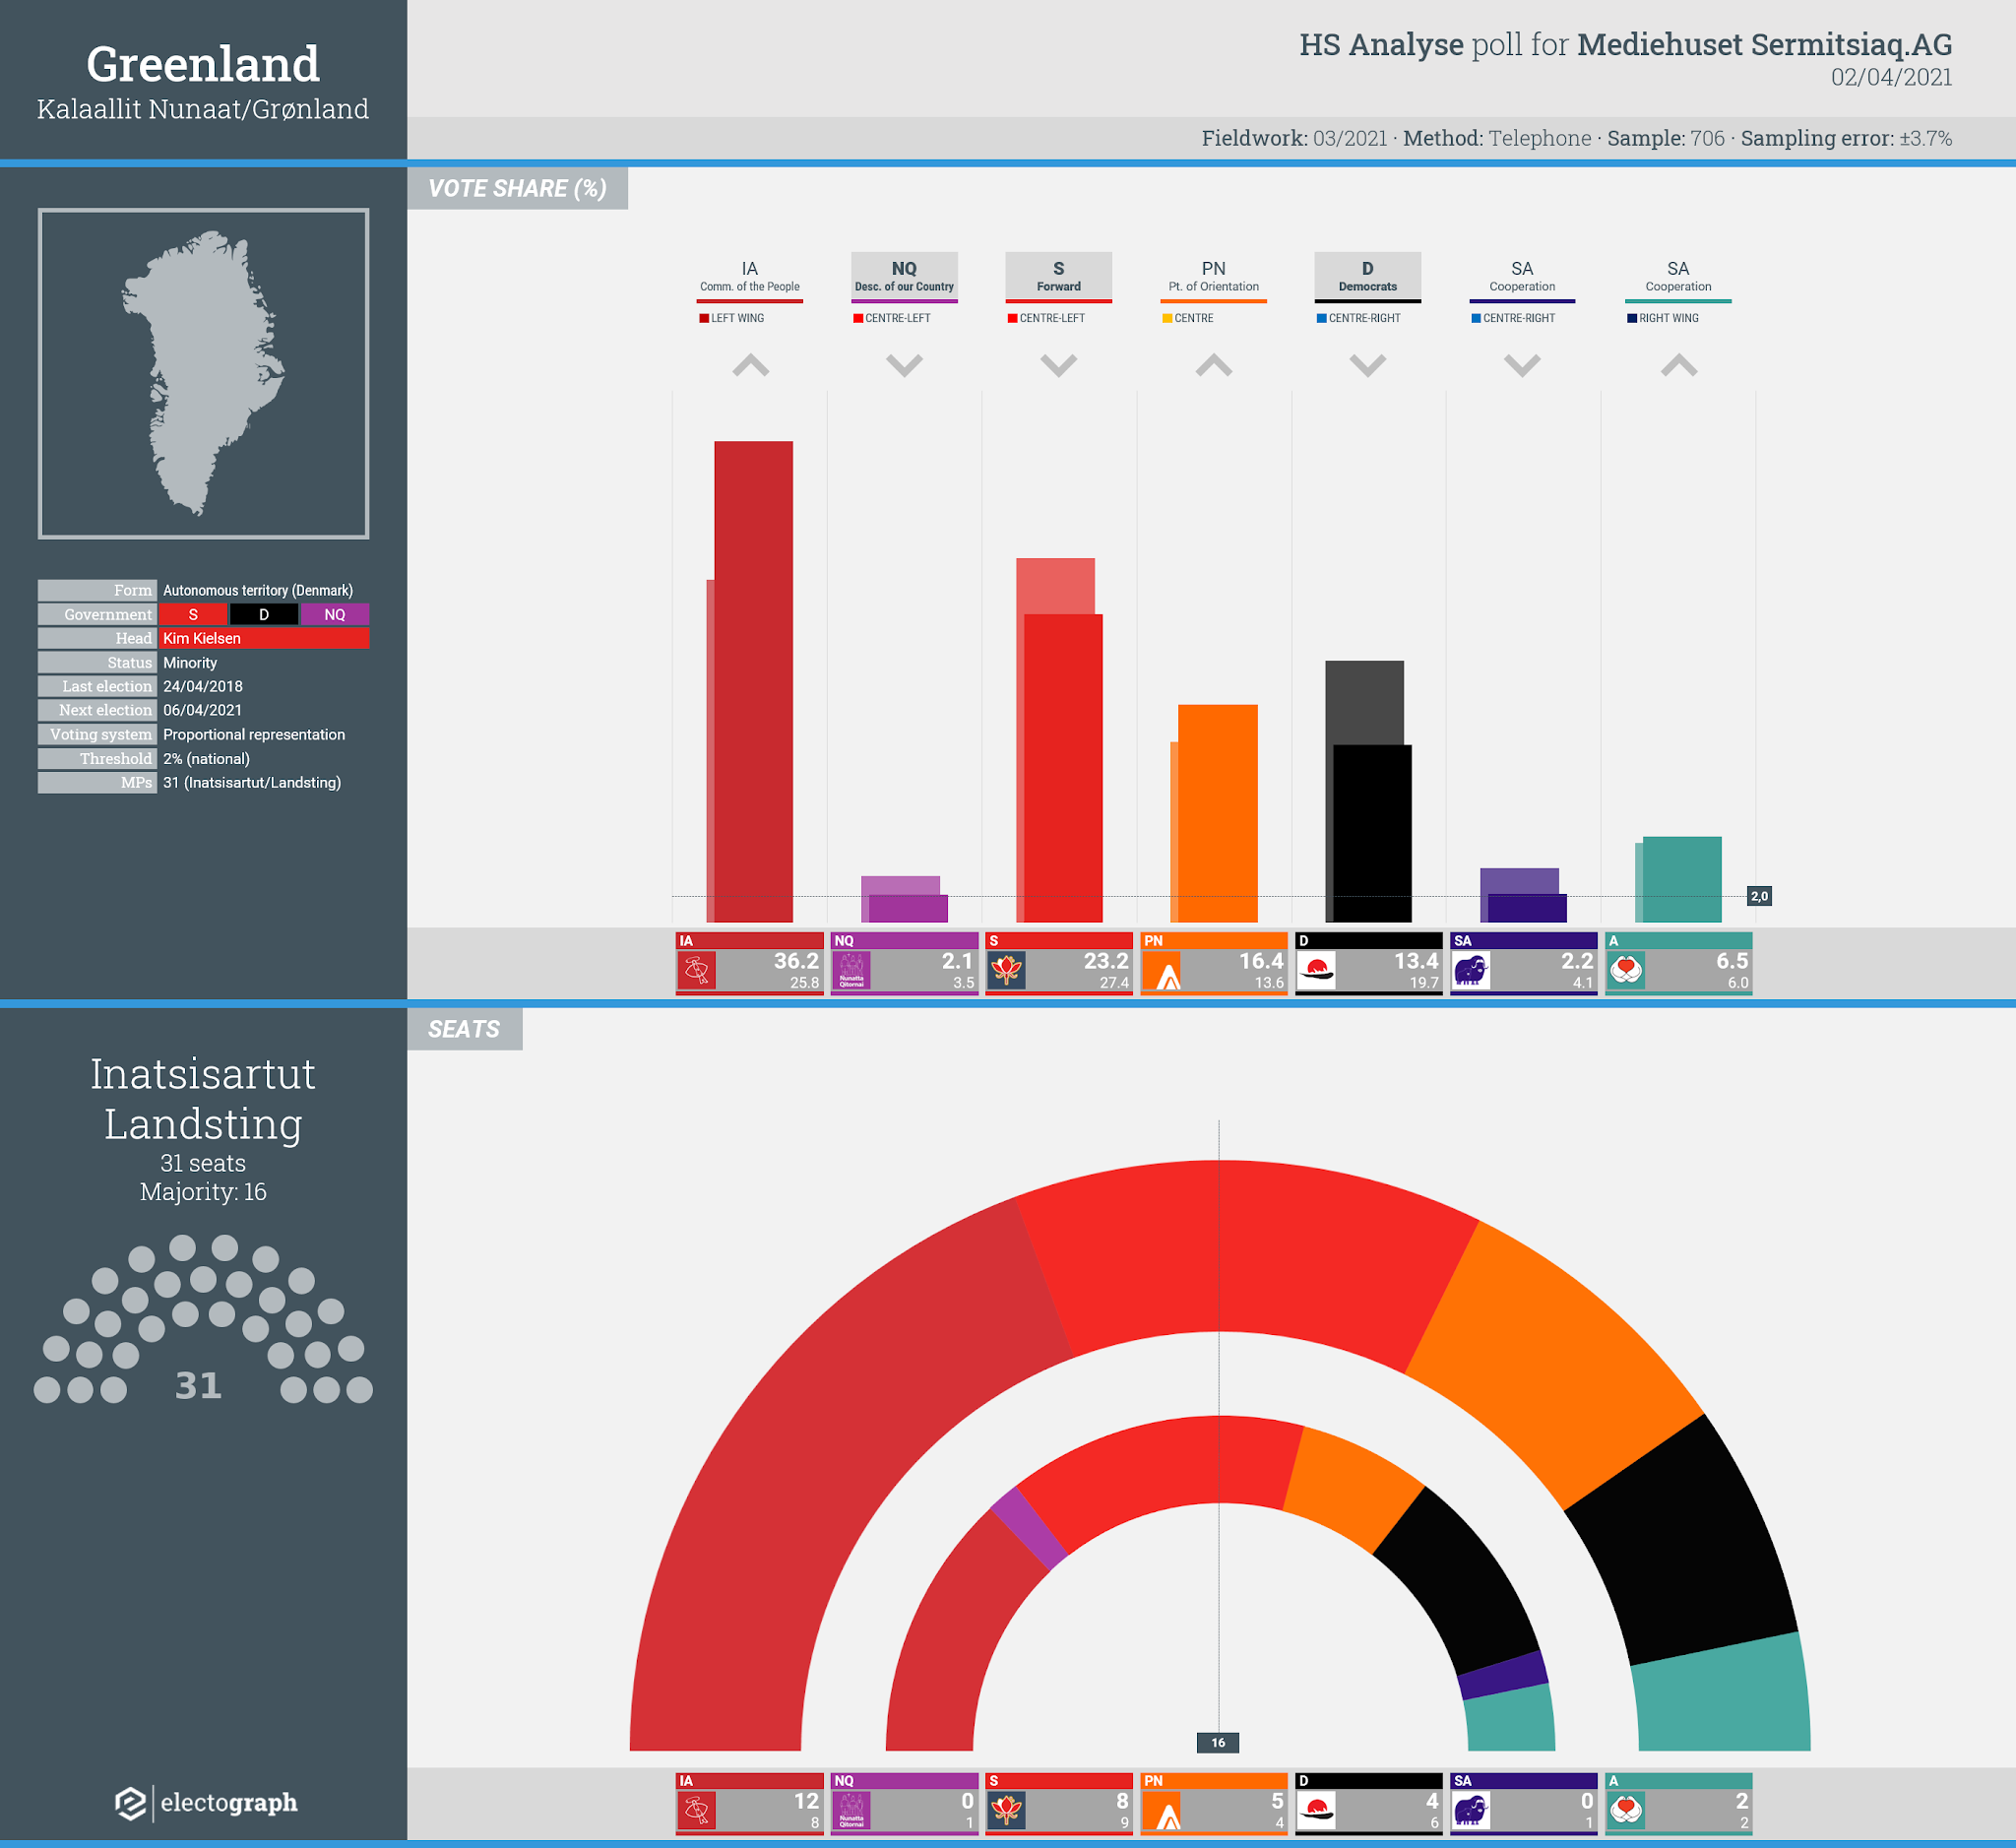 GREENLAND: HS Analyse poll chart for Mediehuset Sermitsiaq.AG, 2 April 2021